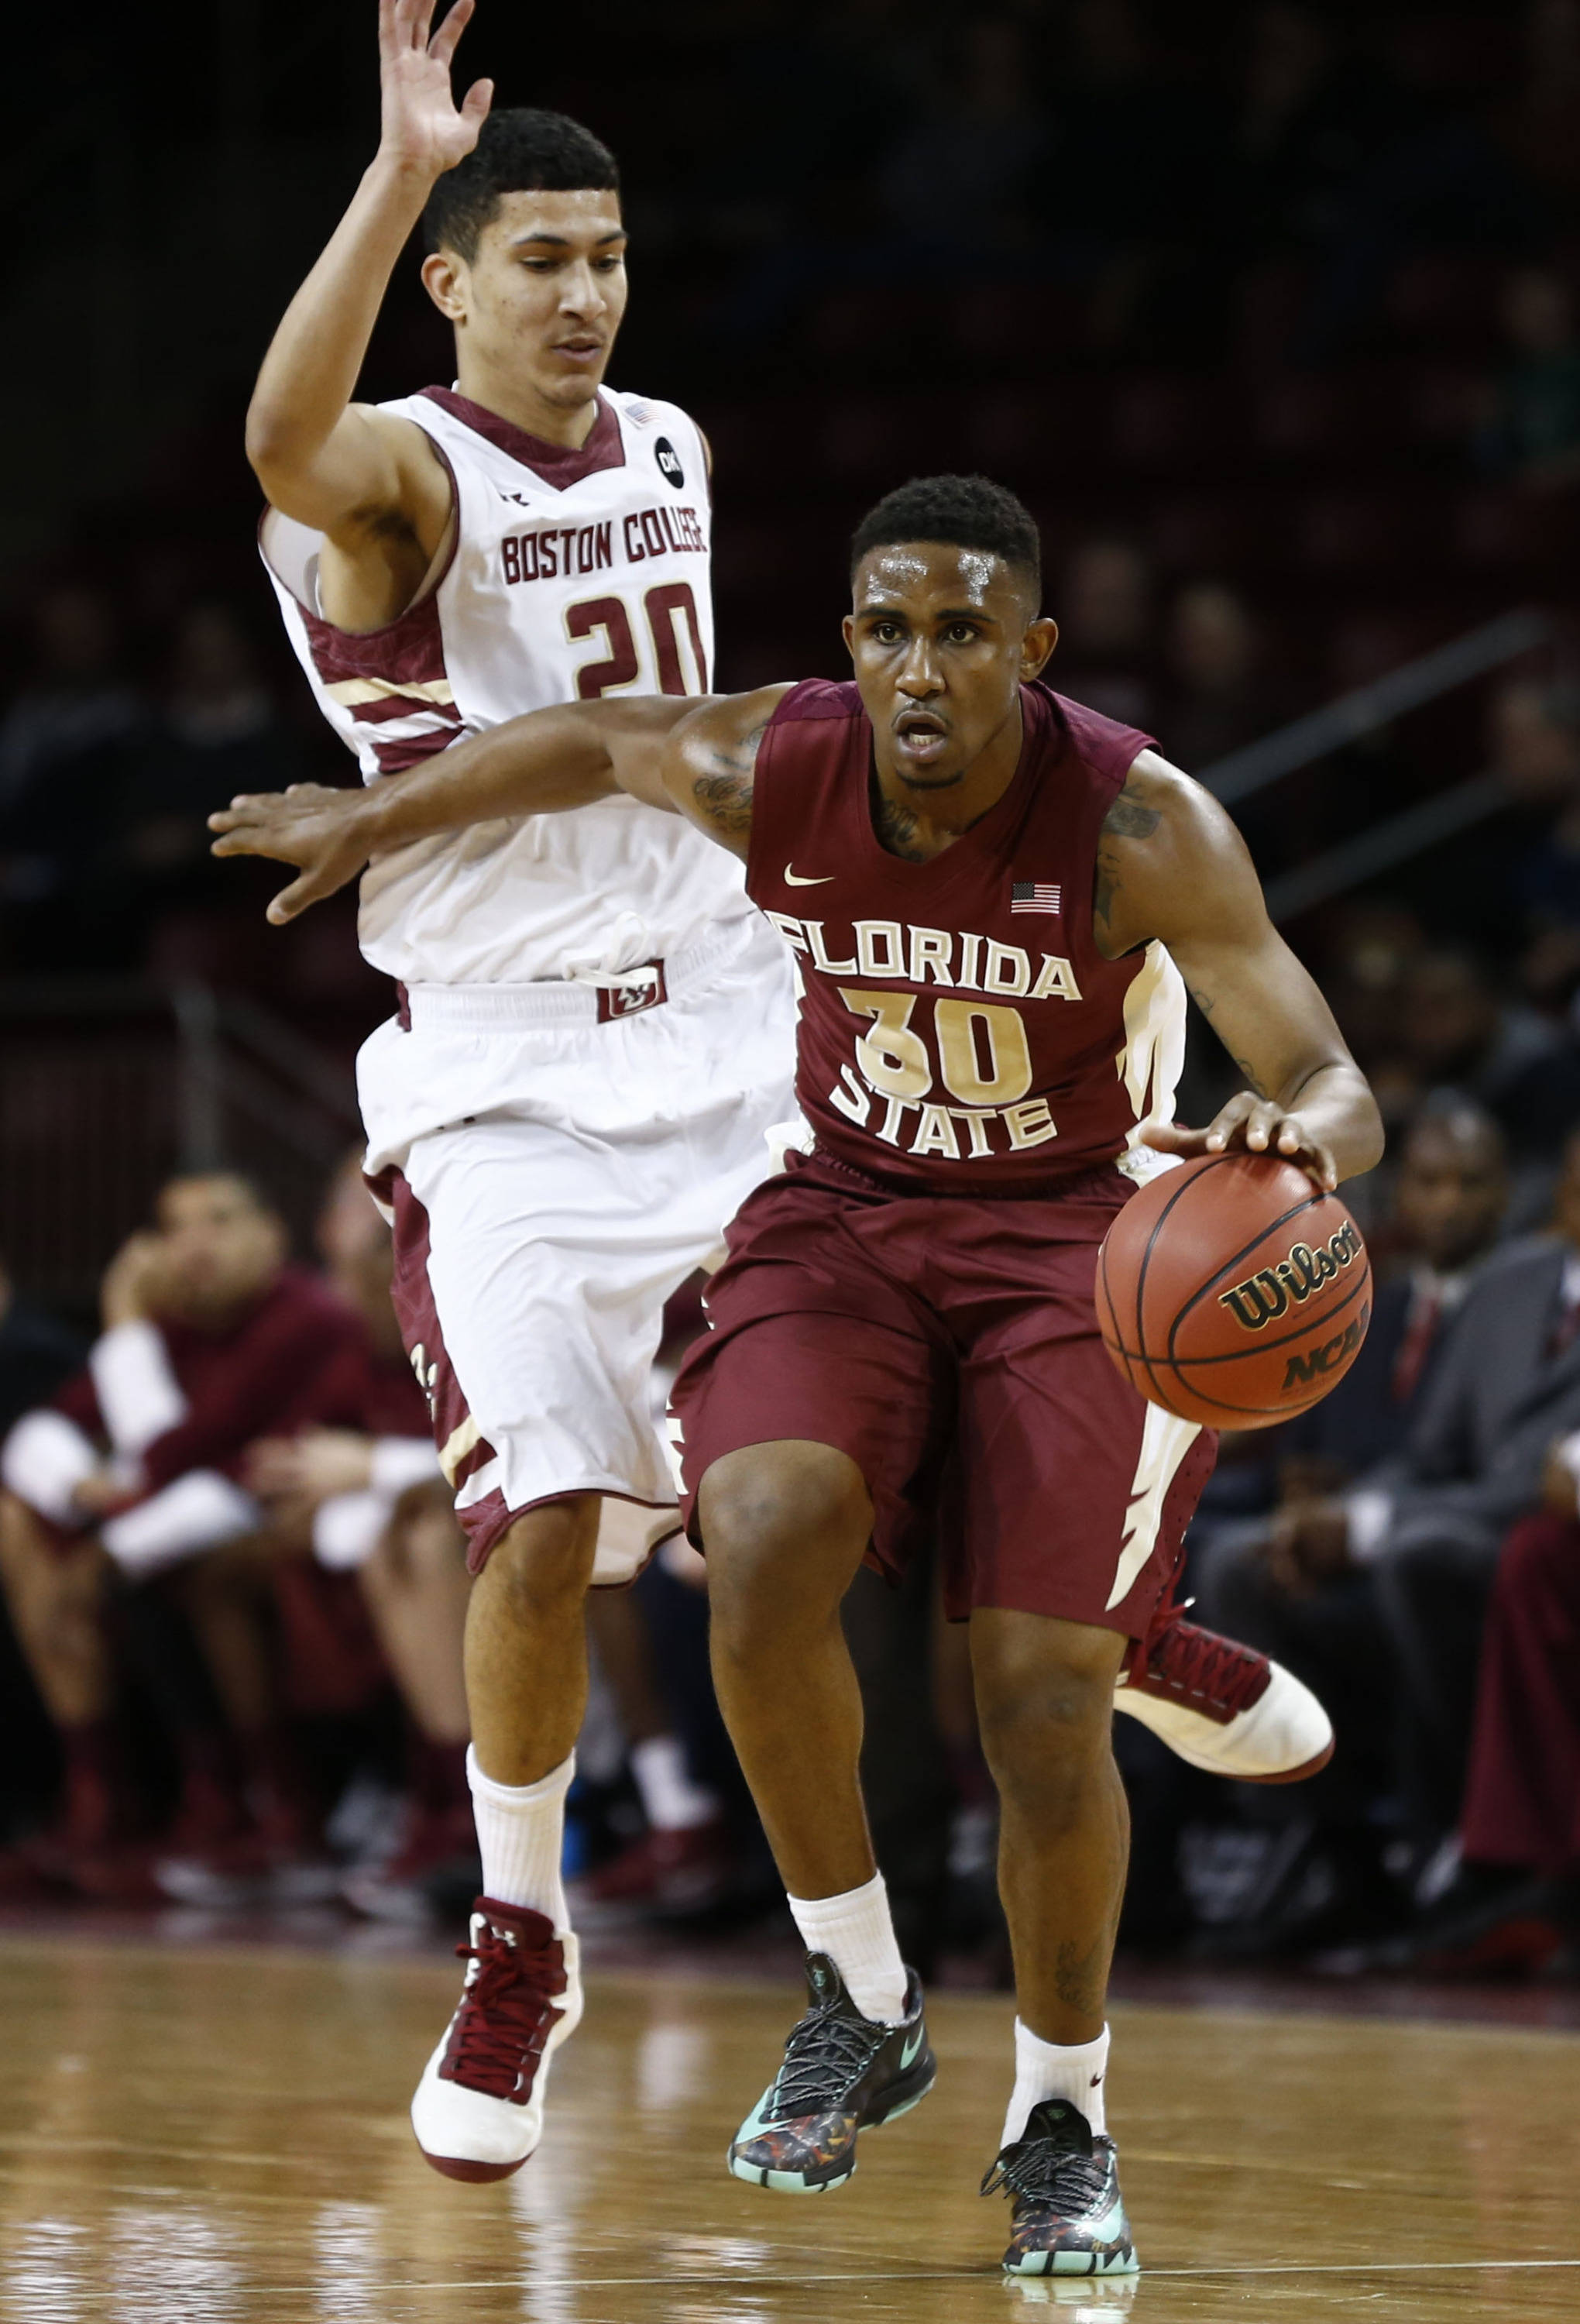 Mar 4, 2014; Chestnut Hill, MA, USA; Seminoles guard Ian Miller (30) dribbles the ball against Boston College Eagles guard Lonnie Jackson (20) during the first half. Mark L. Baer-USA TODAY Sports